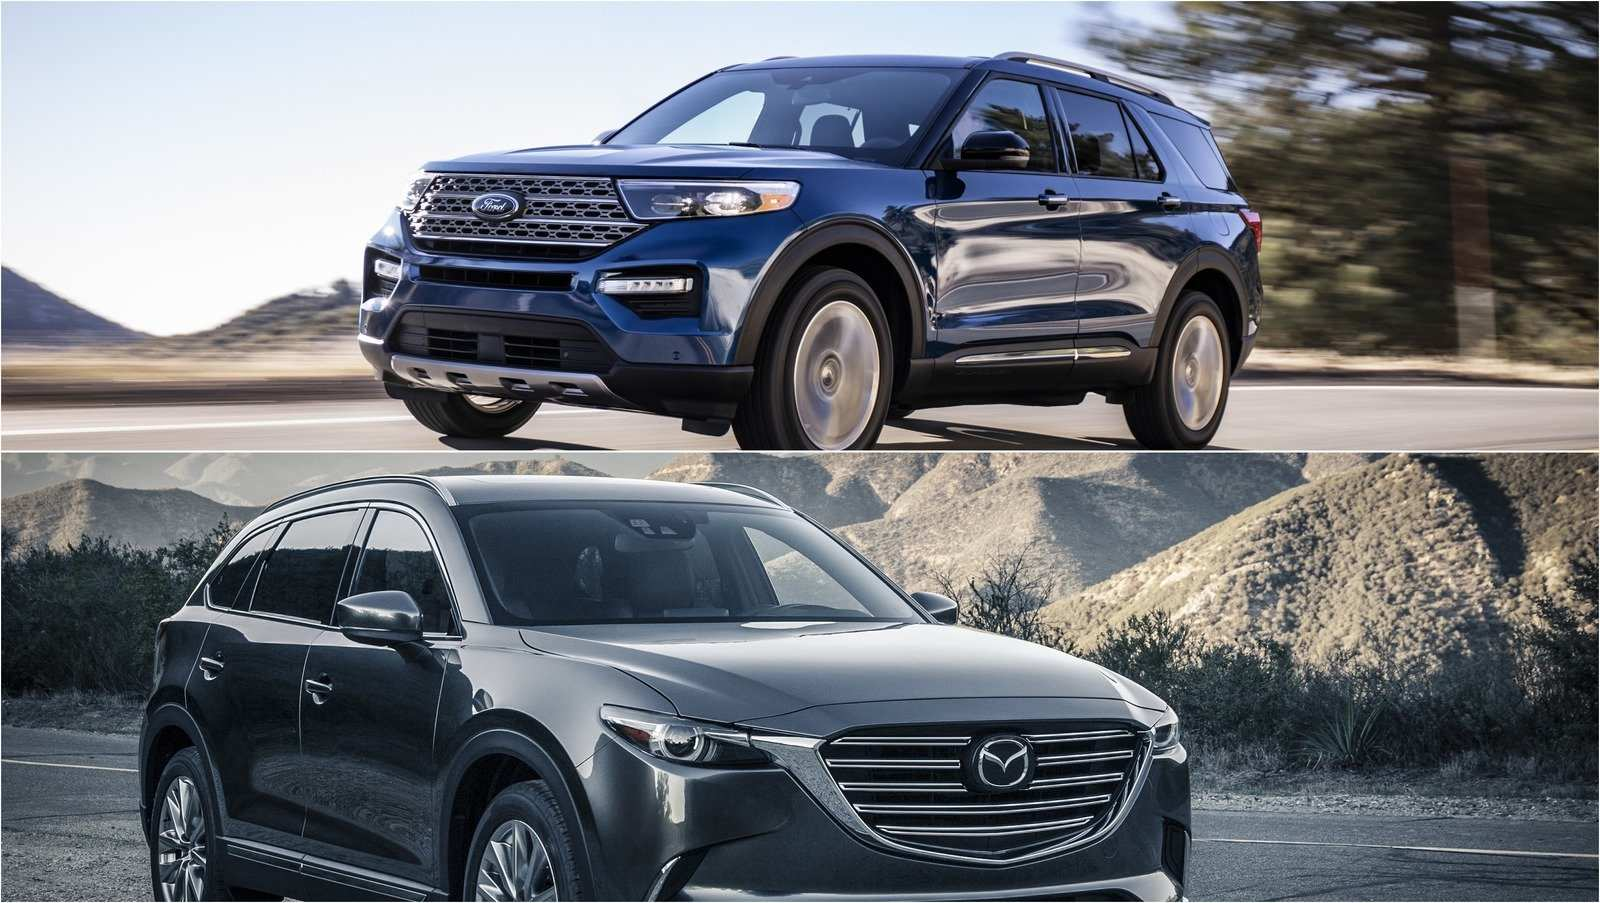 45 The Best 2020 Mazda Cx 9 Price And Review